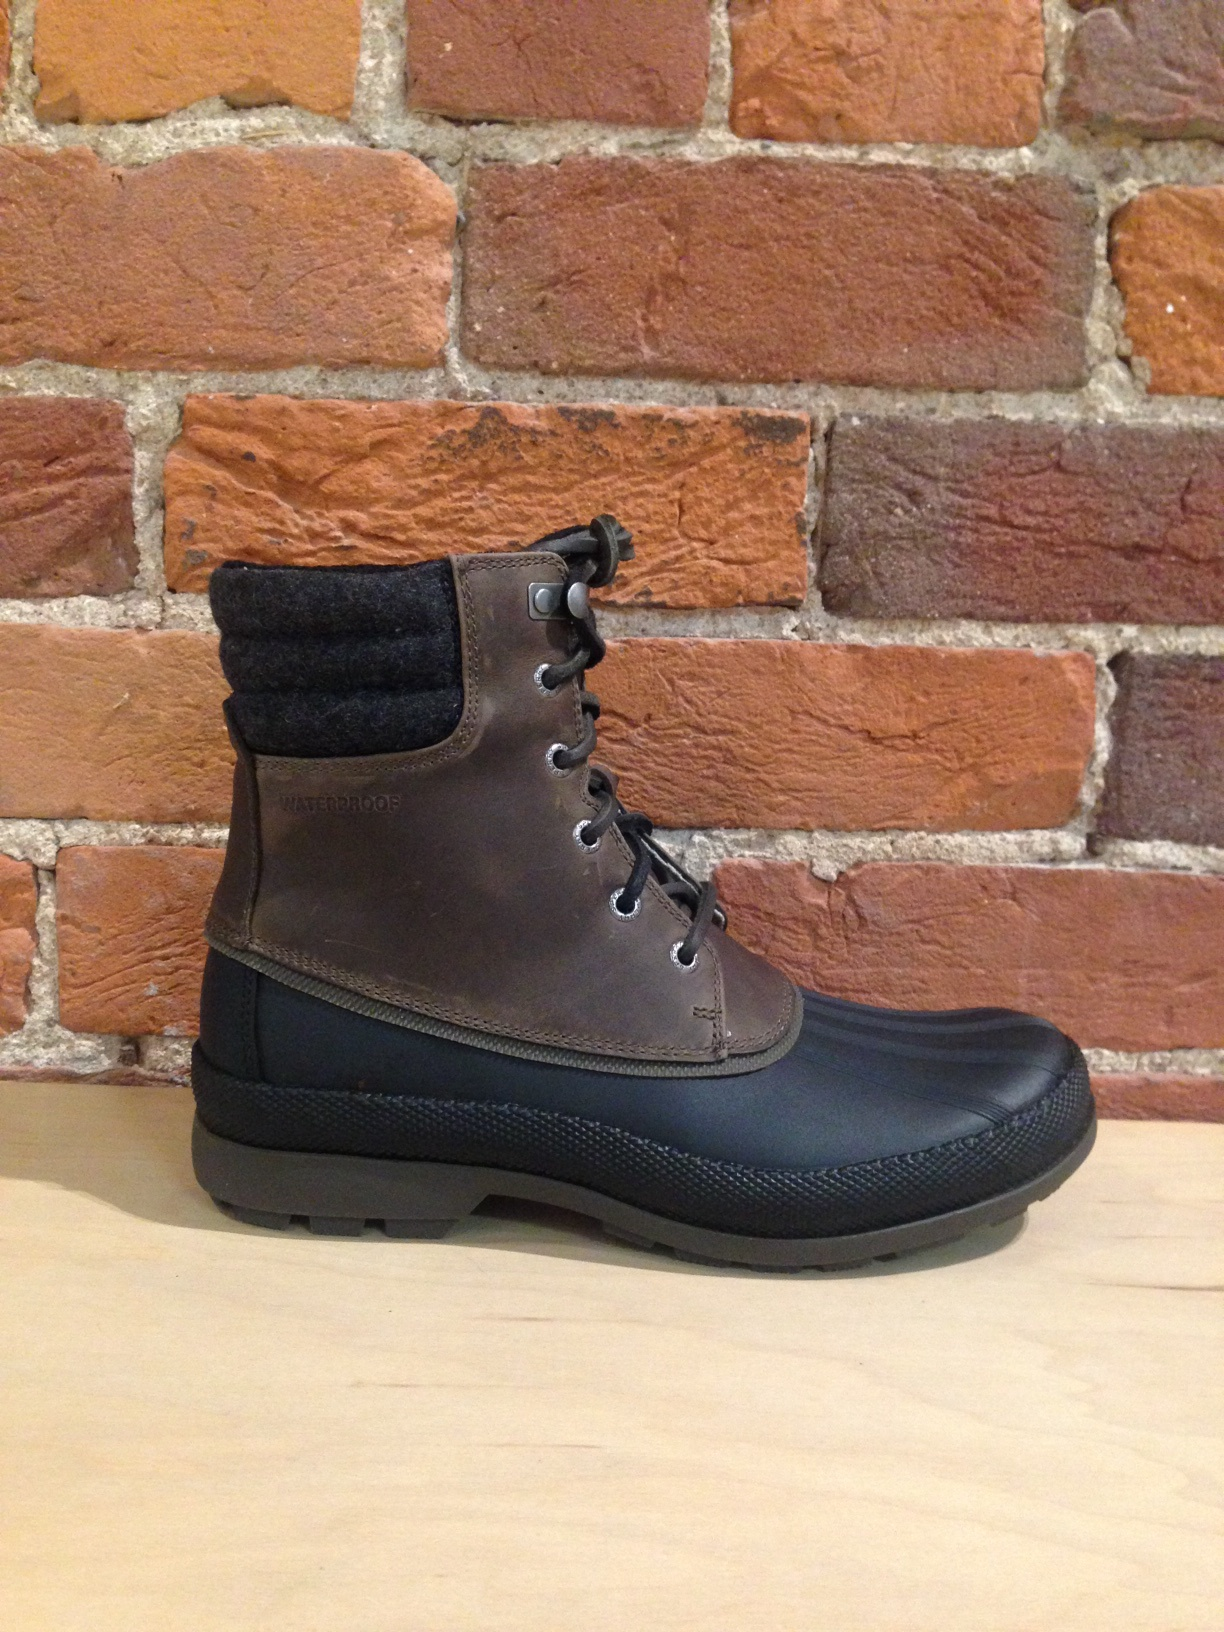 SPERRY - COLD BAY BOOT ICE + IN GREY